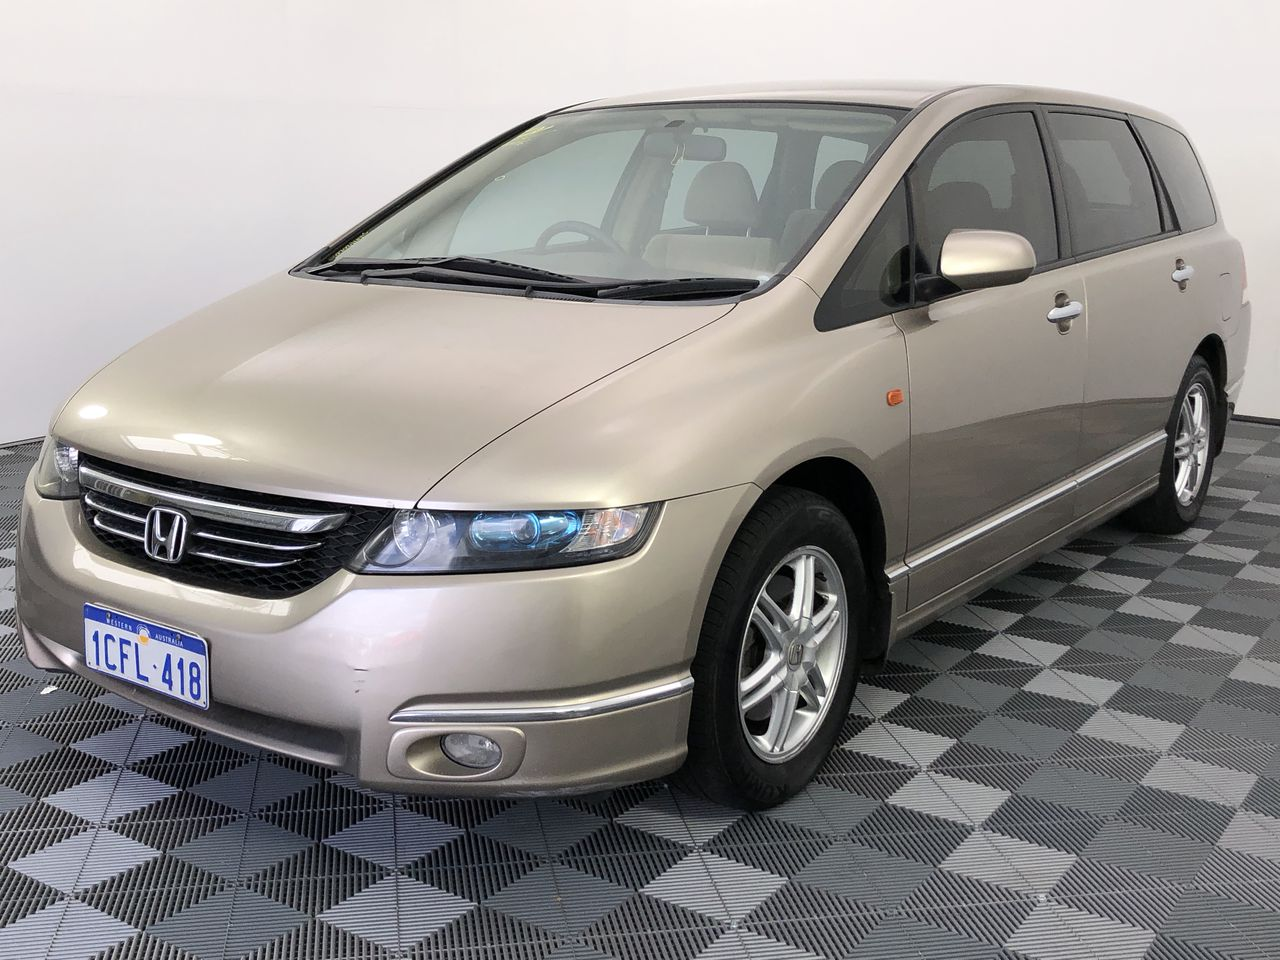 2005 Honda Odyssey Automatic 7 Seats People Mover